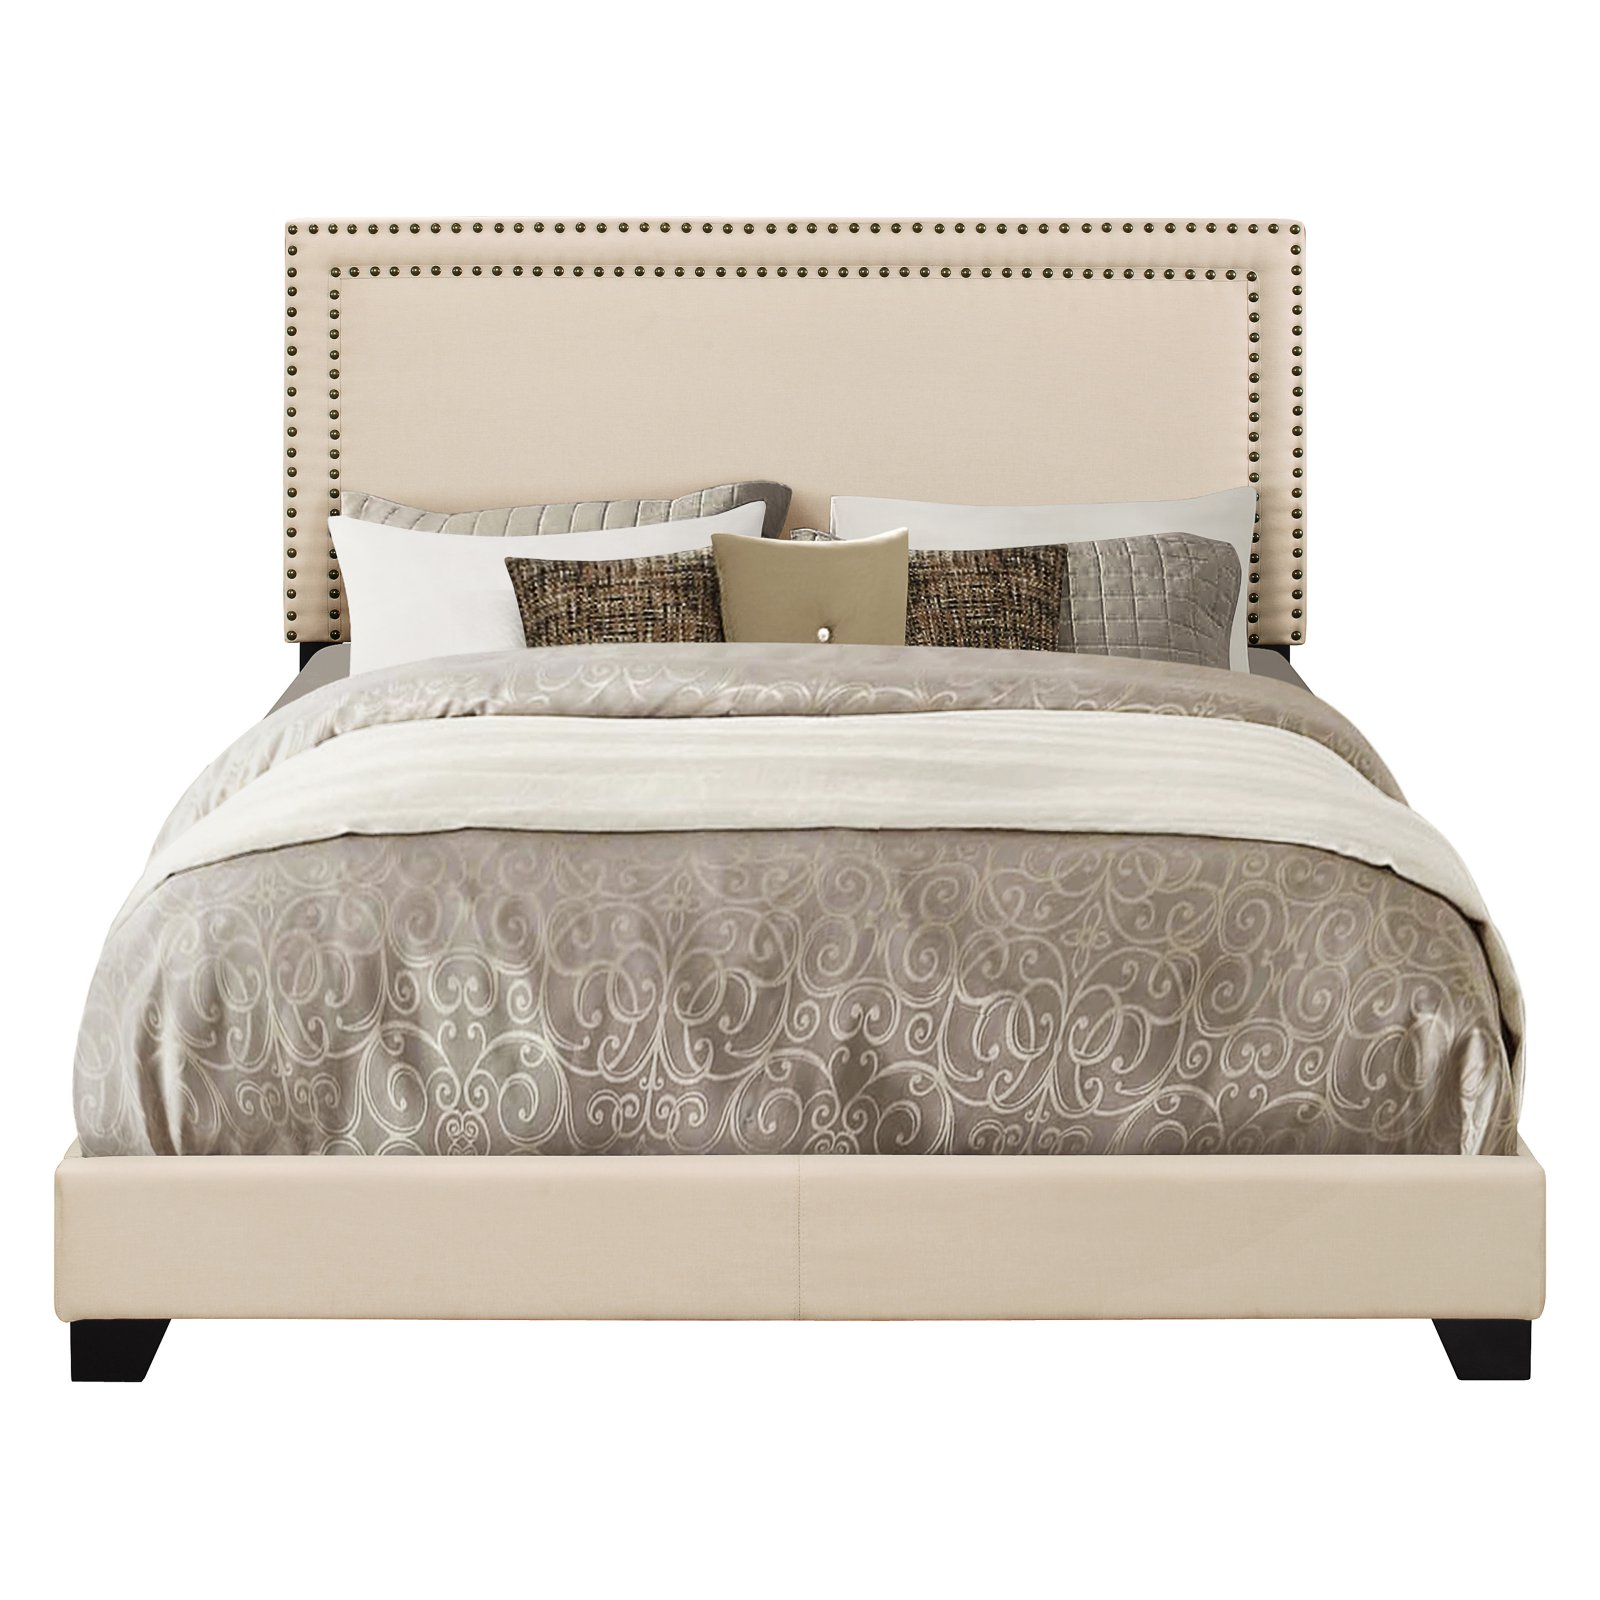 Right2Home Upholstered Platform Bed with Nailhead Trim